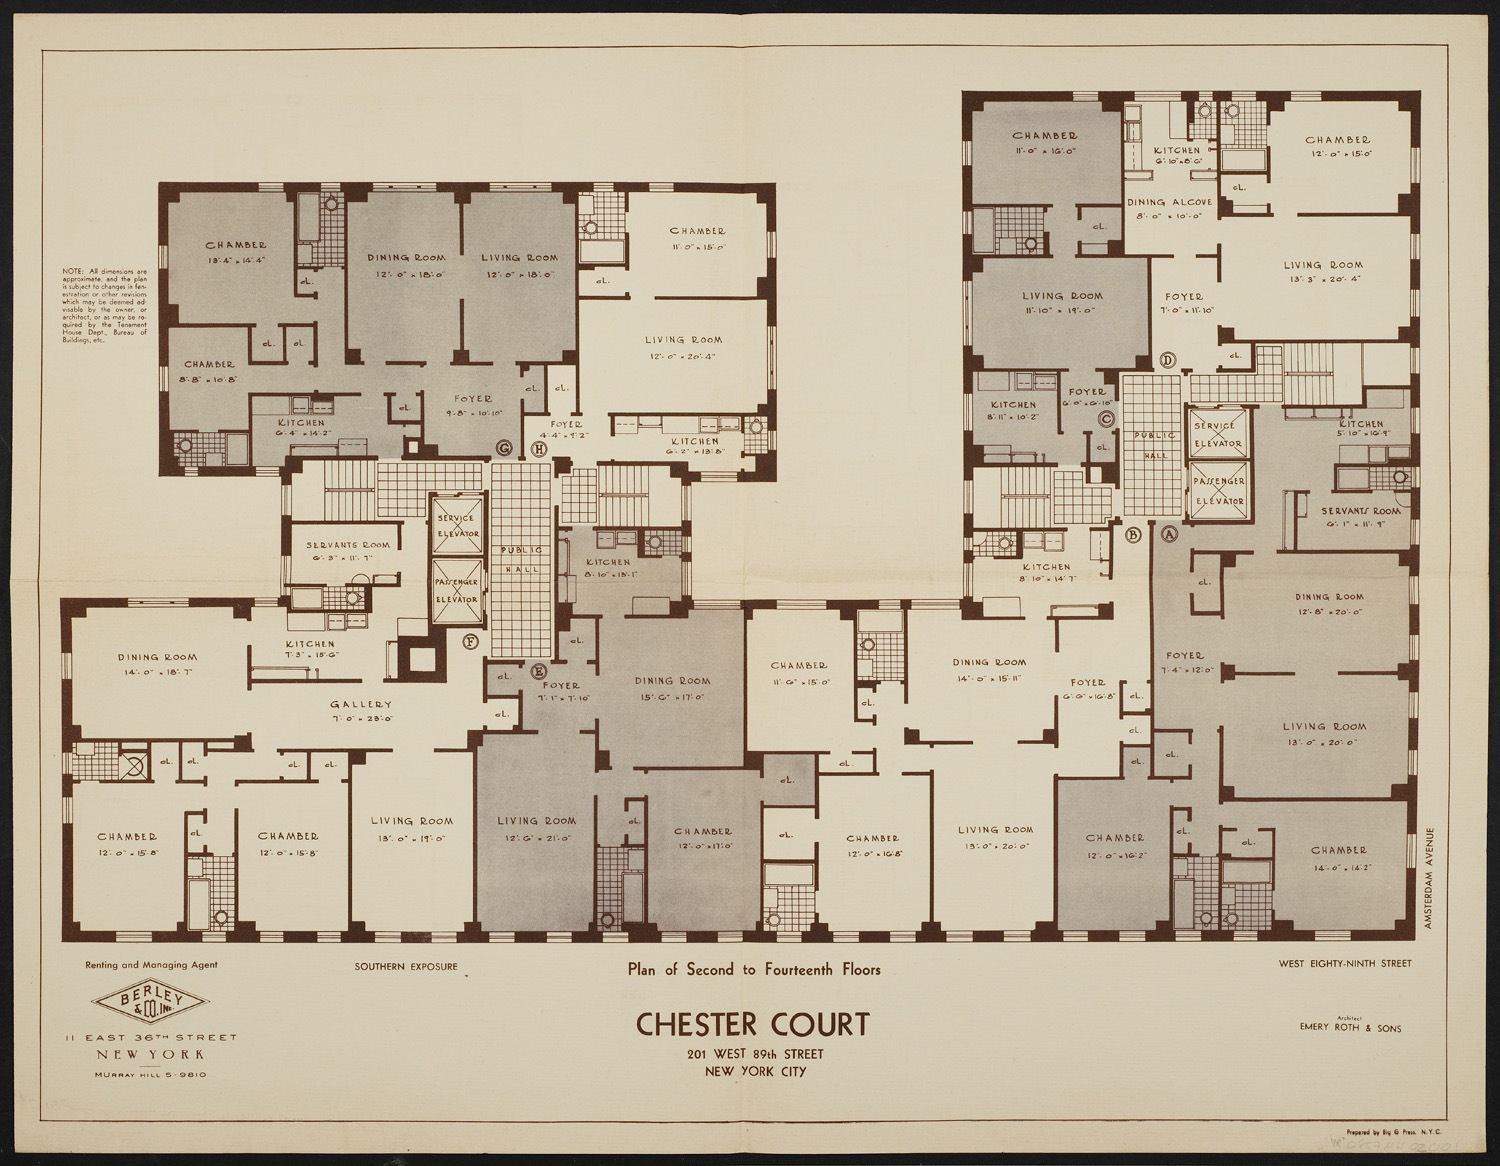 New york city apartment building floor plans for Floor framing plan